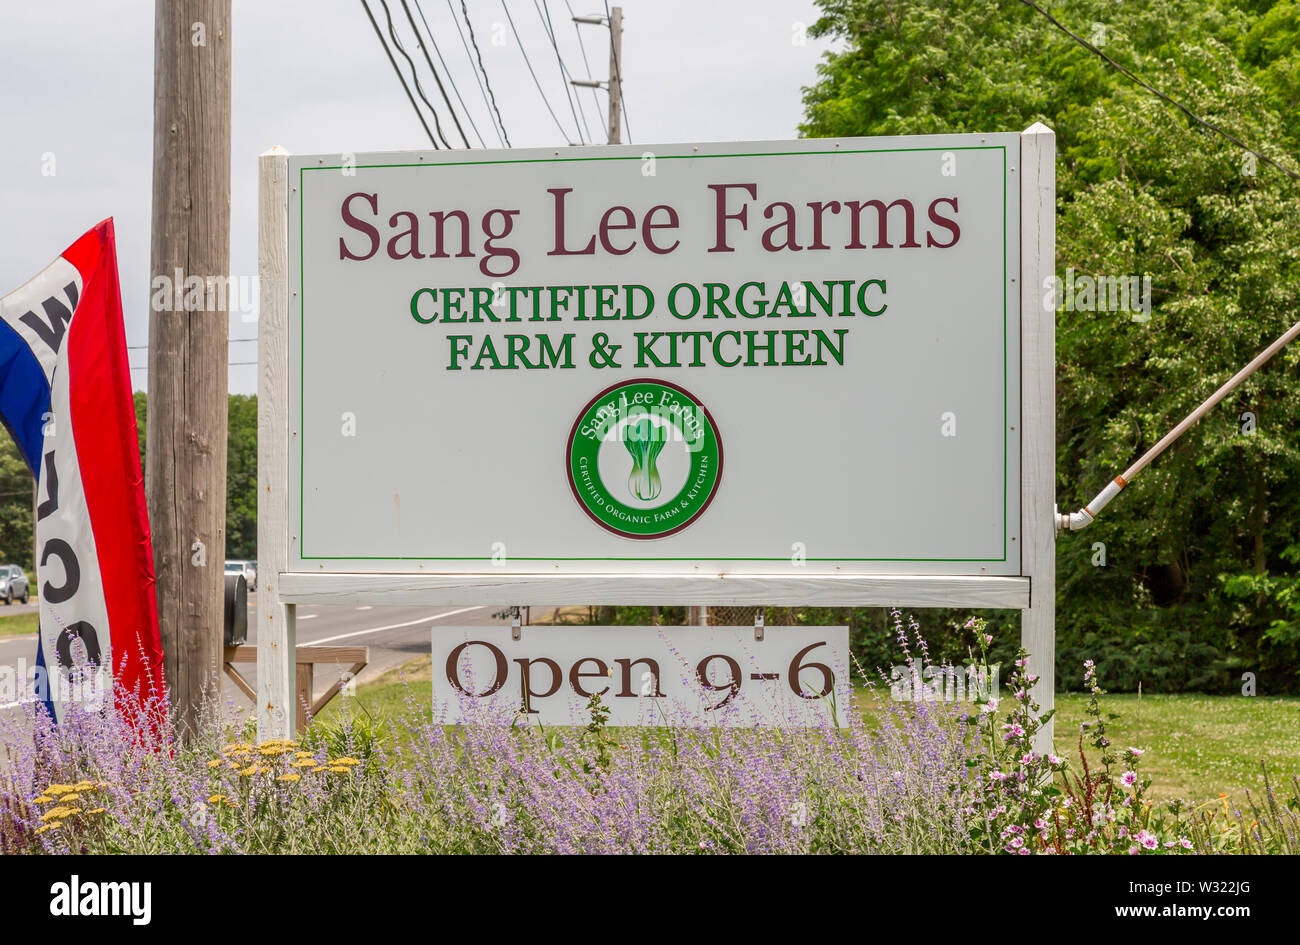 Sang Lee Farms, North Fork, Eastern Long Island, NY Stock Photo